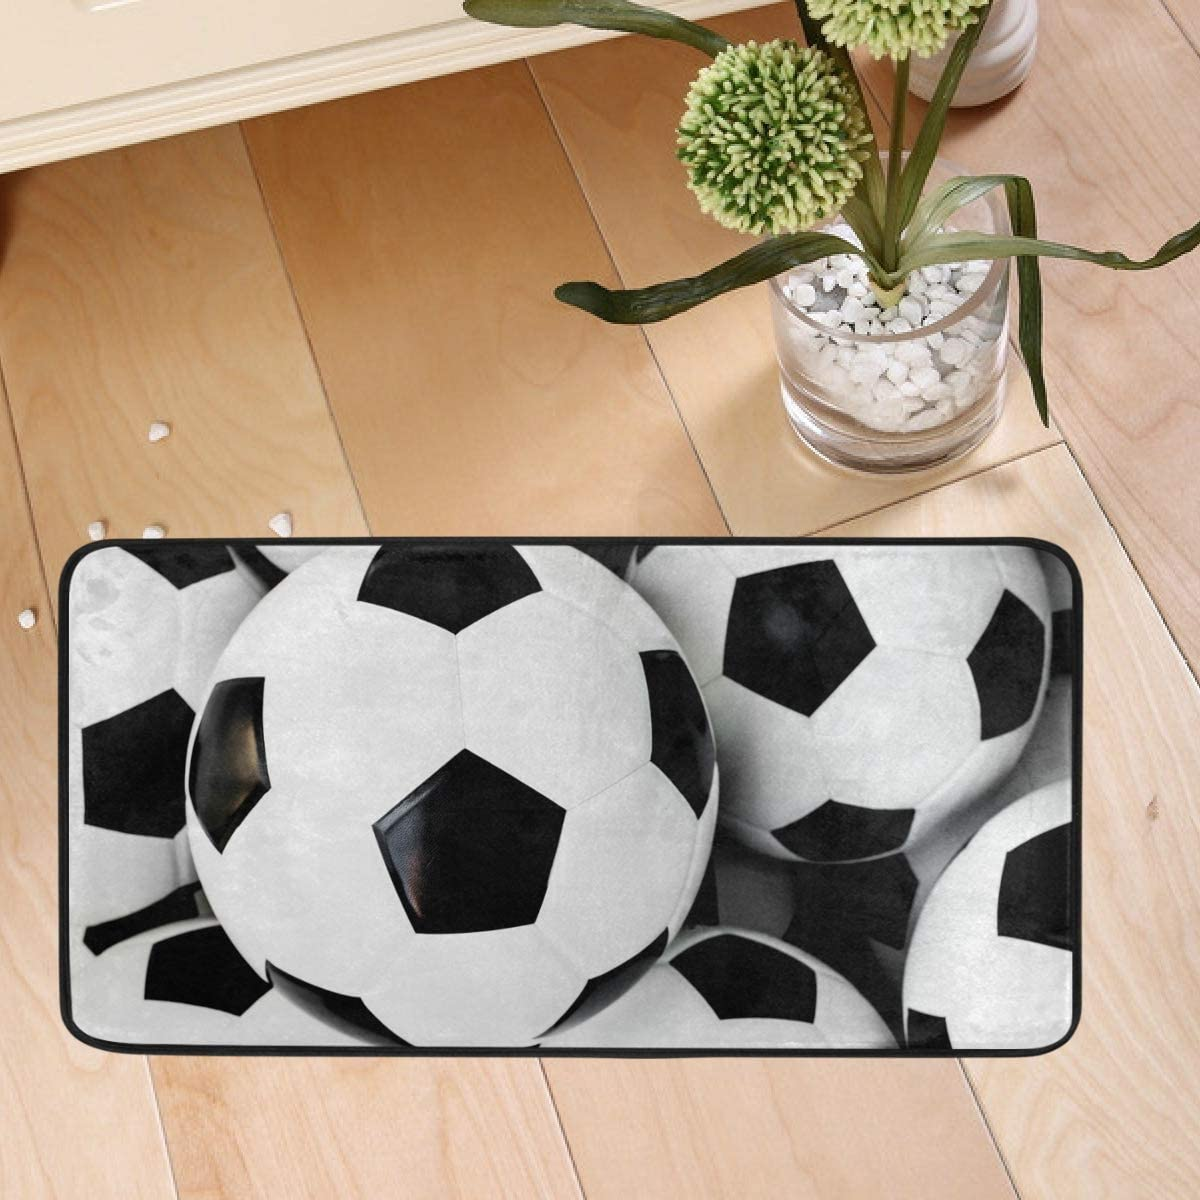 Kitchen Rugs Floor Mat - Football Soccer Non Skid Comfort Doormat Washable Anti-Fatigue Office Chair Carpet 20x20in for Dining Room Dorm Bedroom Home Decor